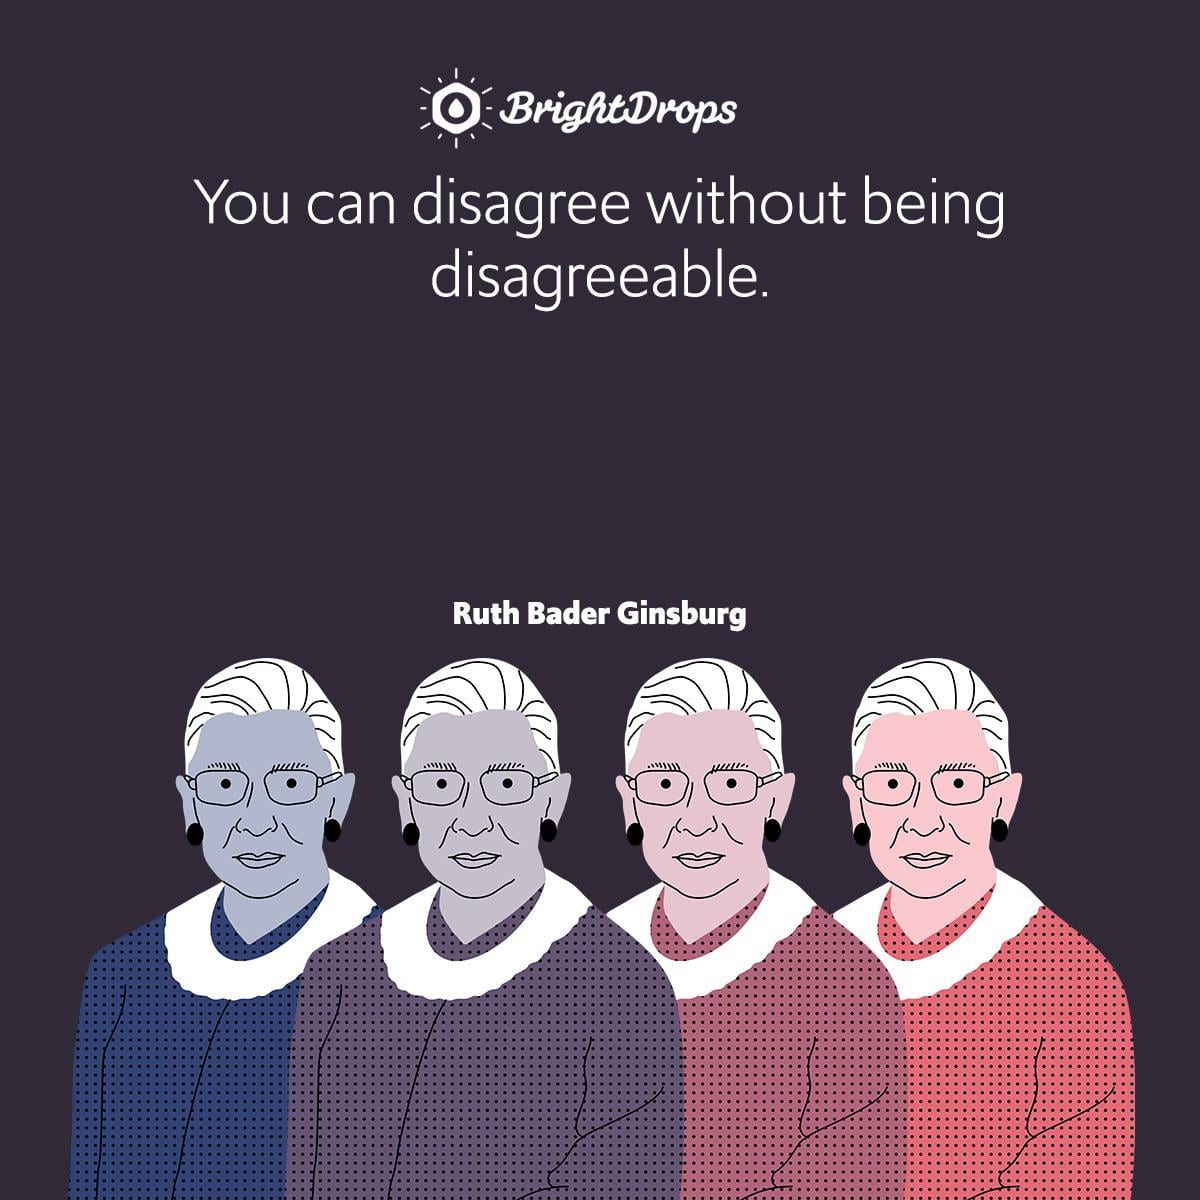 You can disagree without being disagreeable.